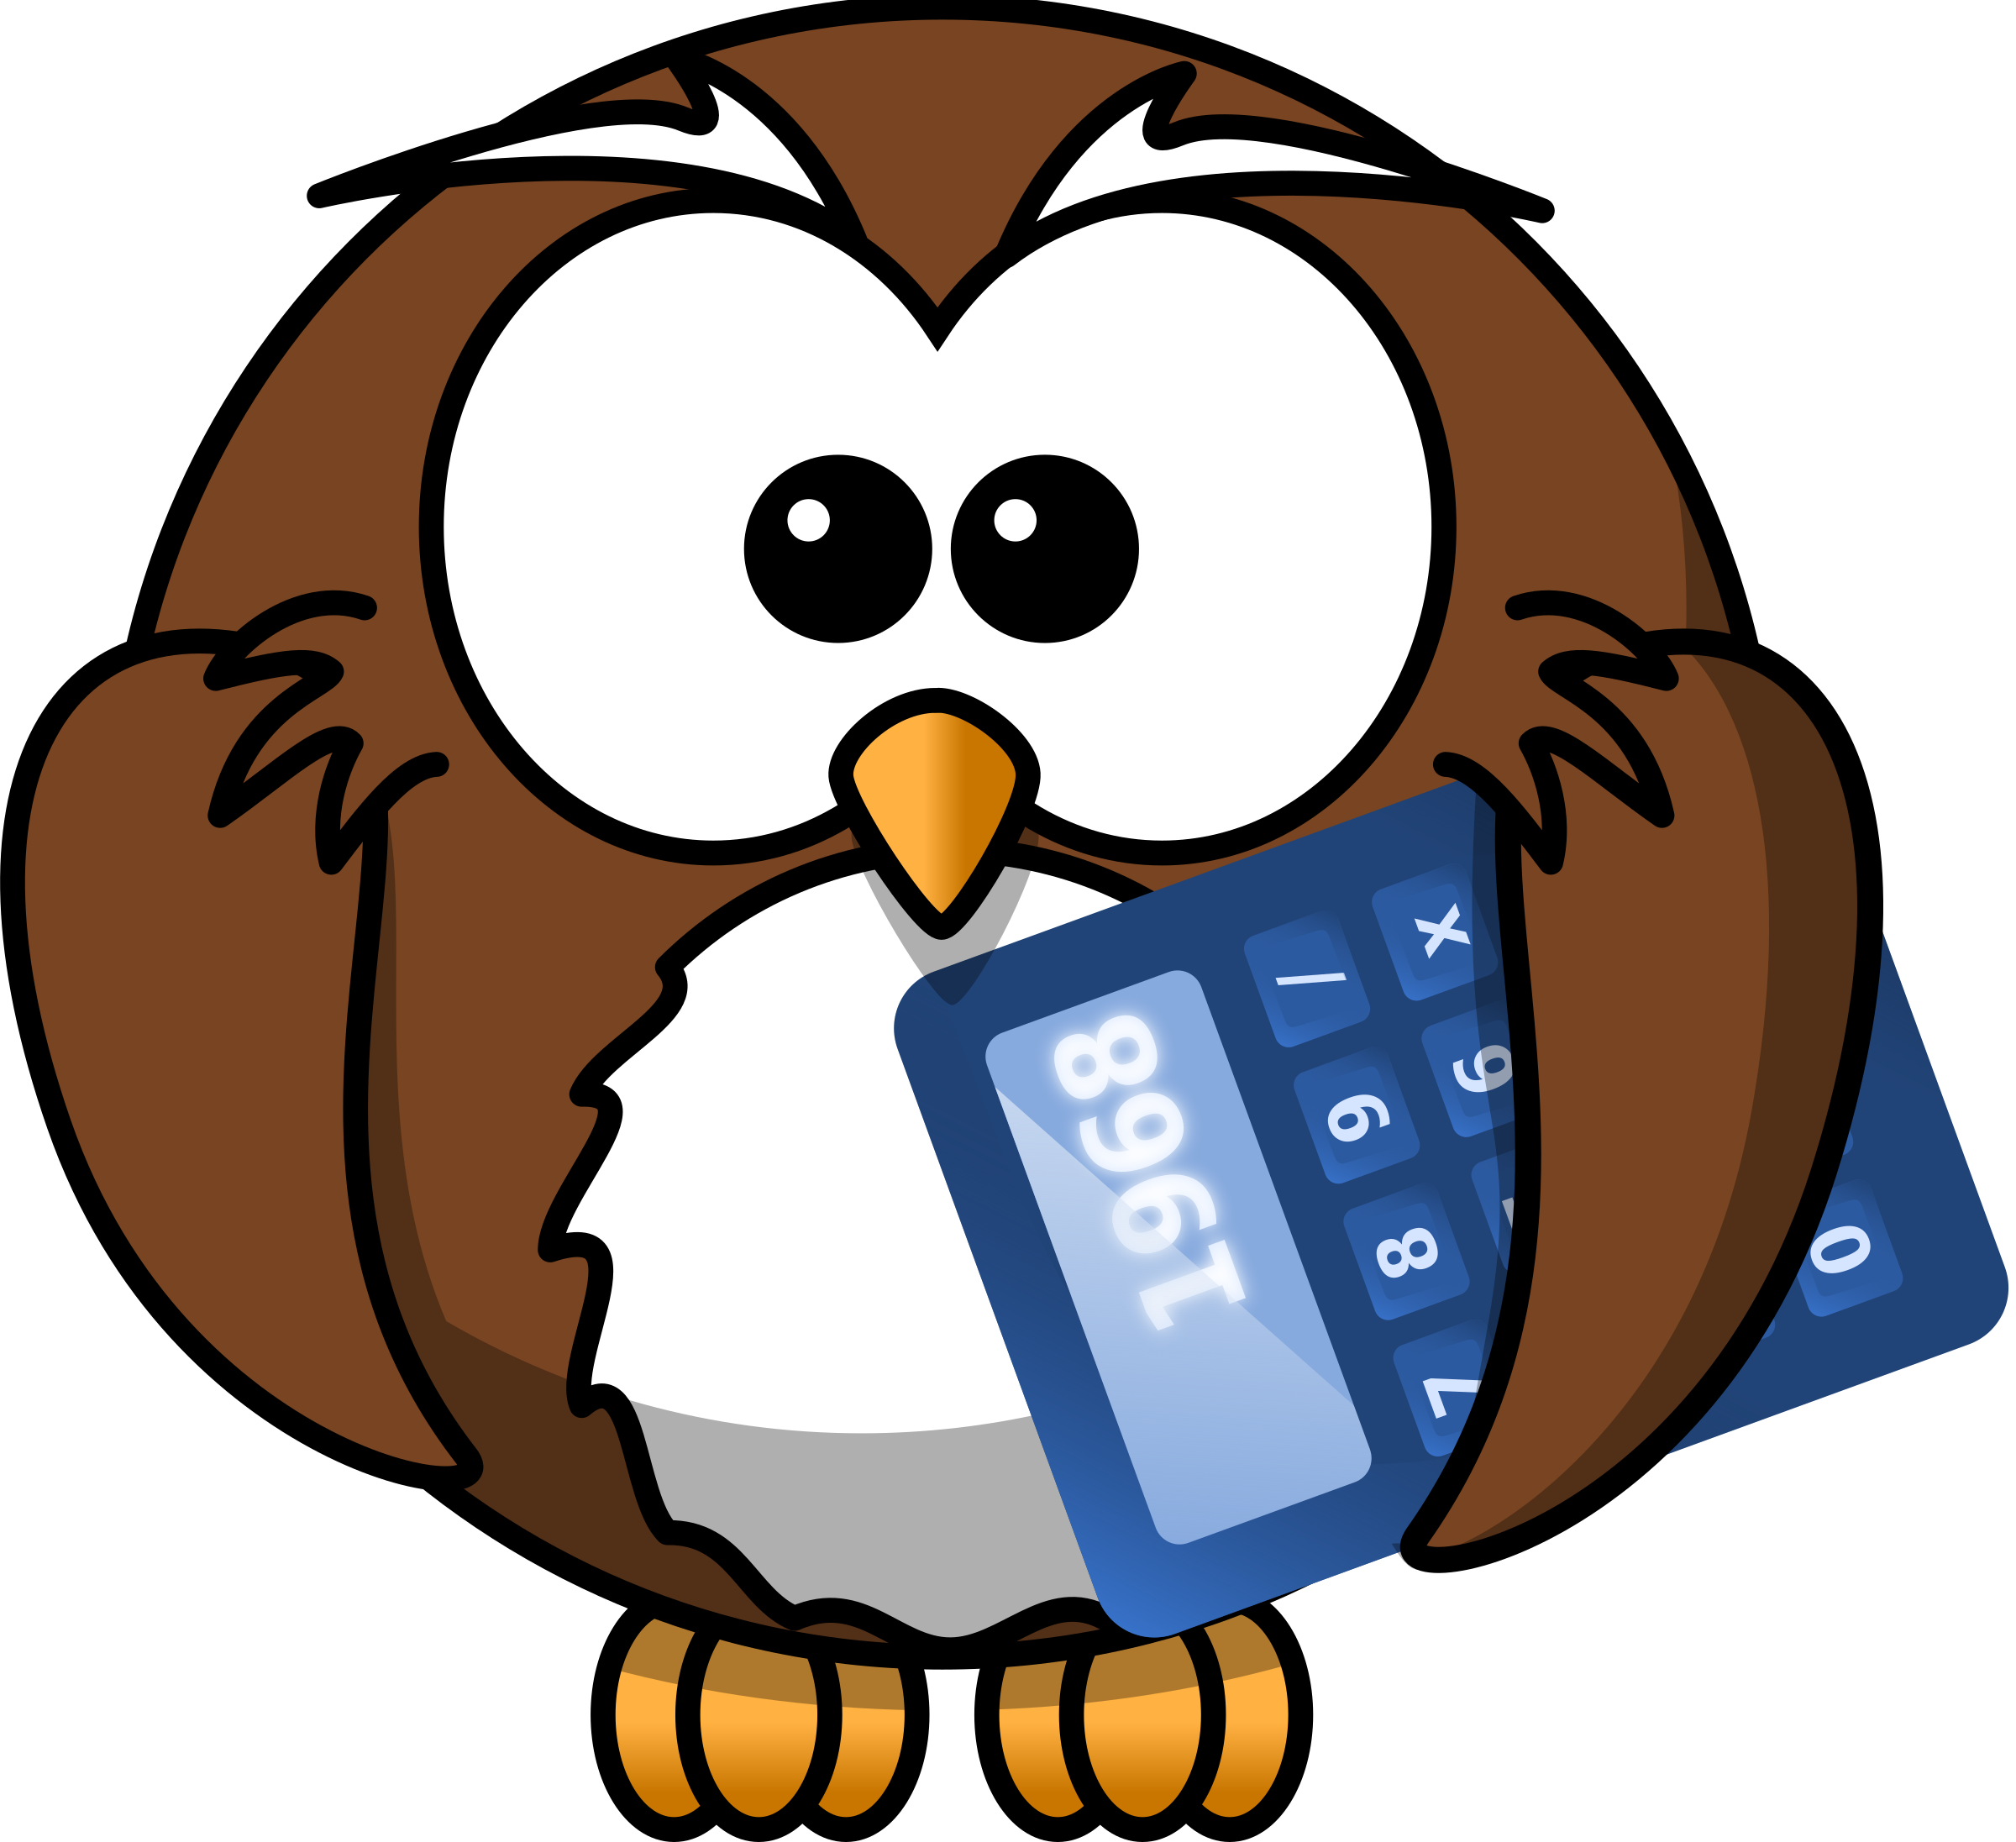 Owl with calculator by Iyo